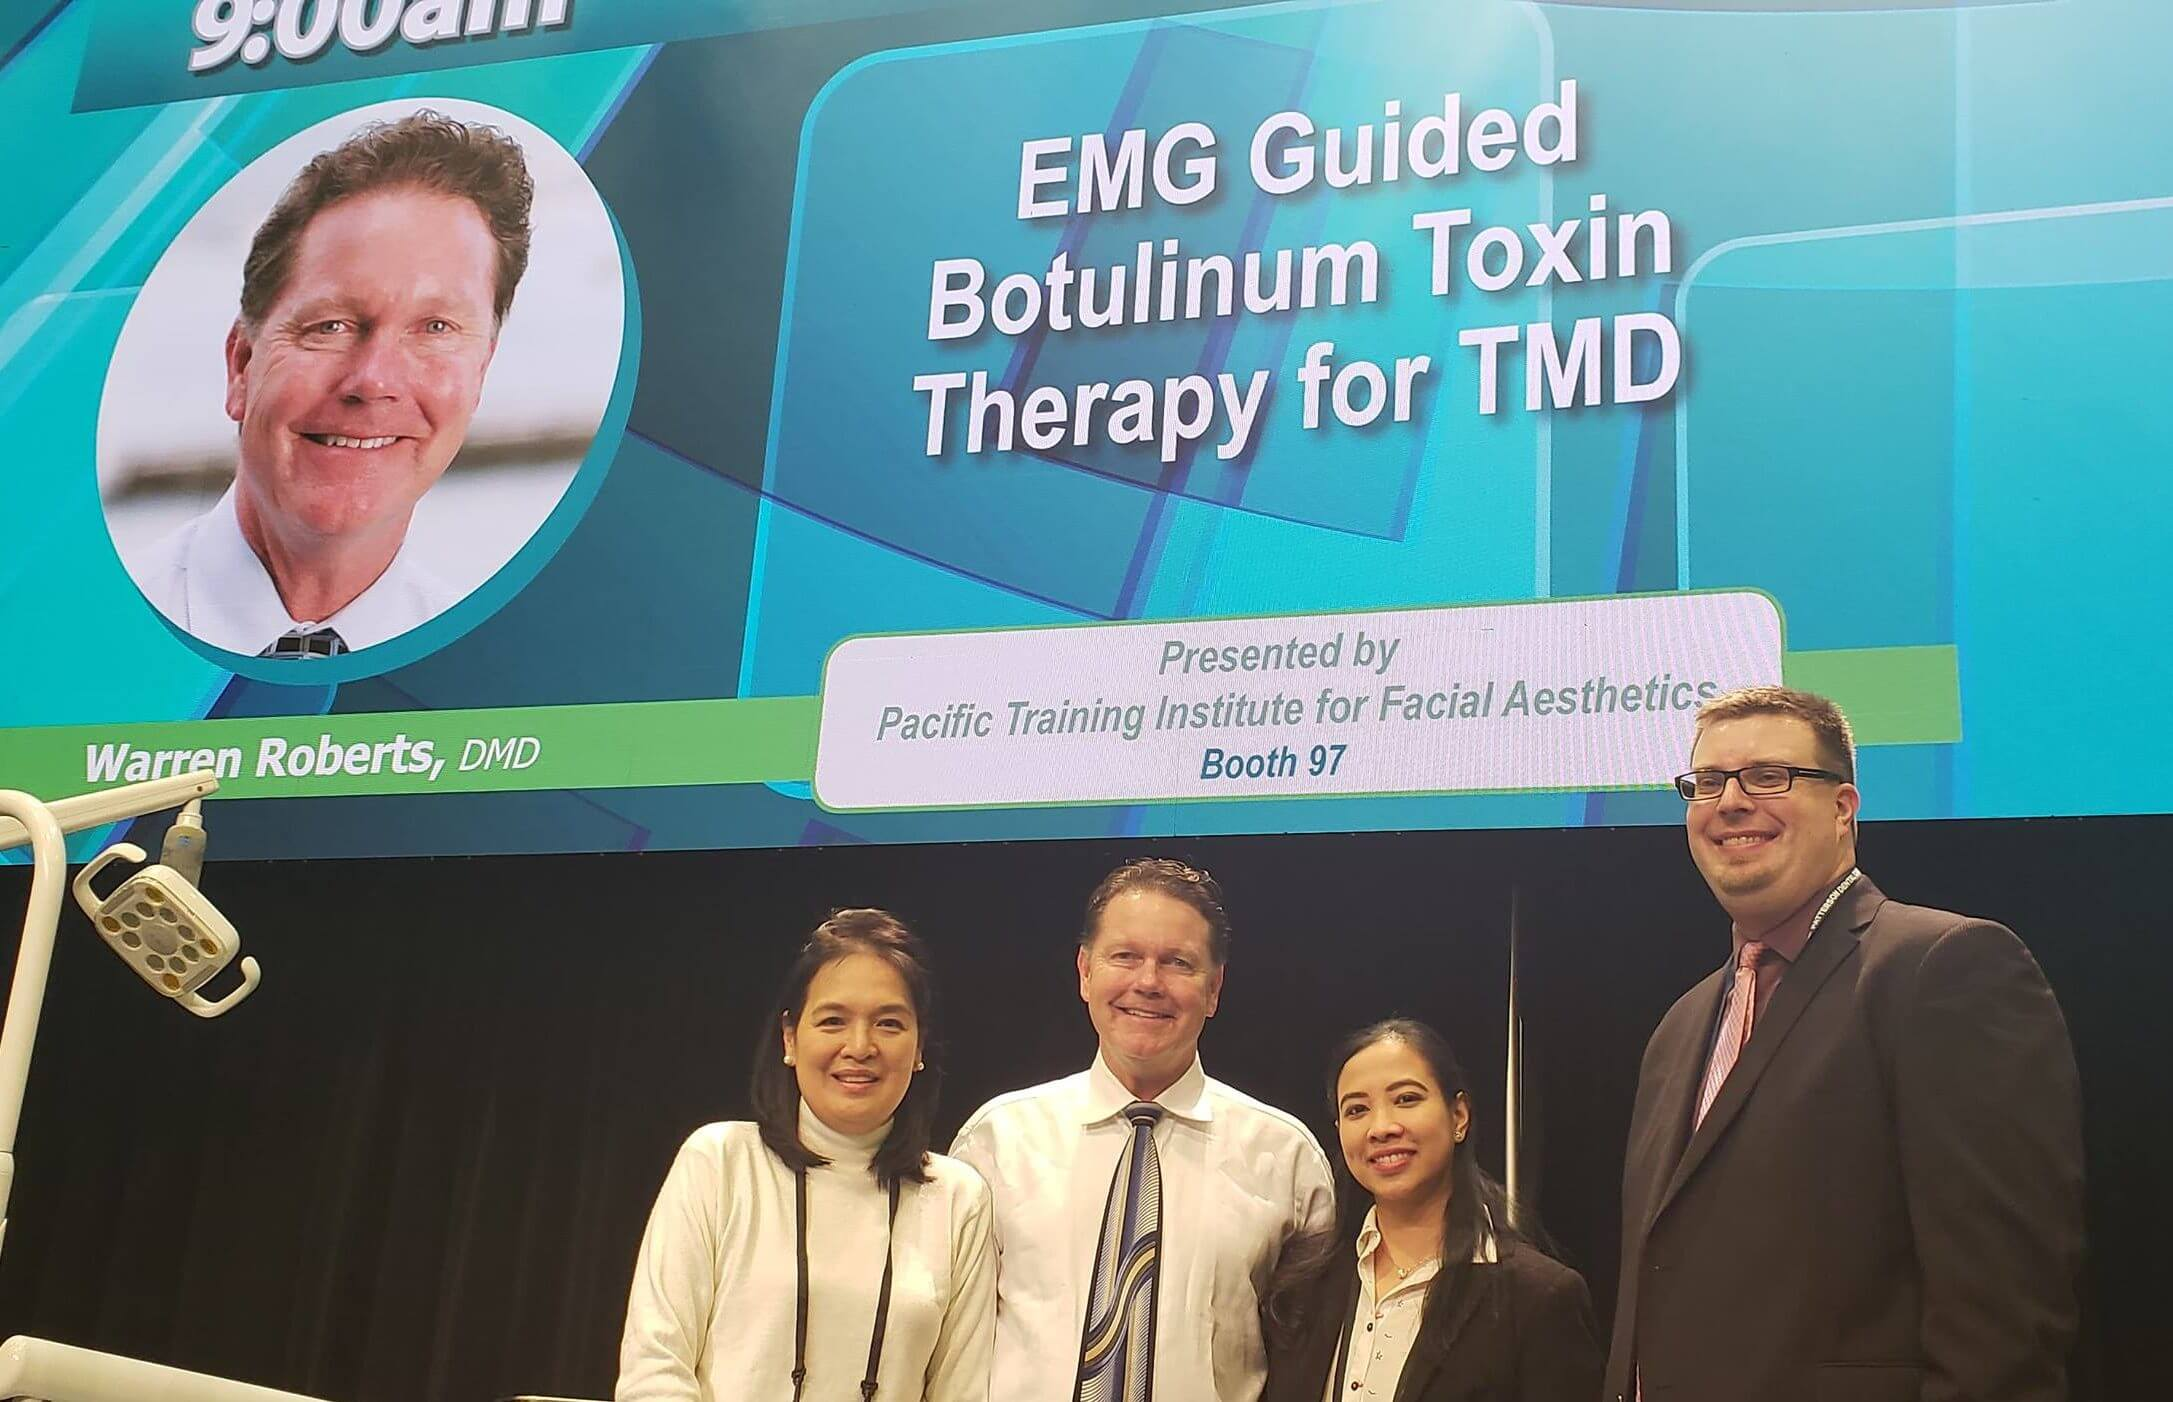 EMG Guided Botox Therapy for TMD